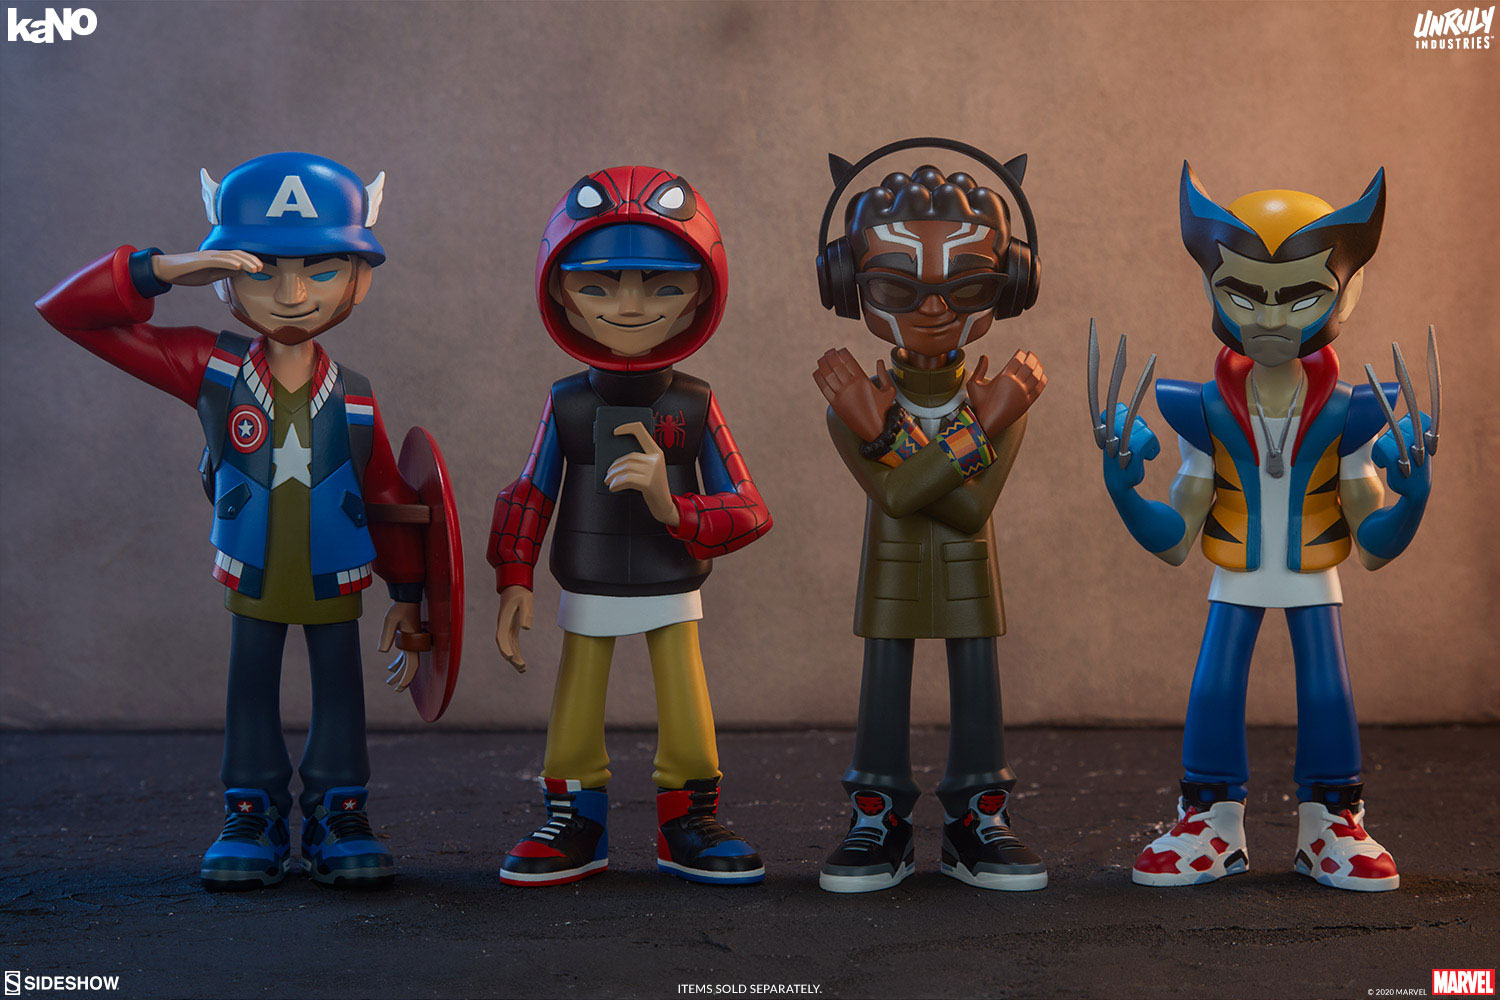 unruly-industries-kano-marvel-designer-toy-figures-in-sneakers